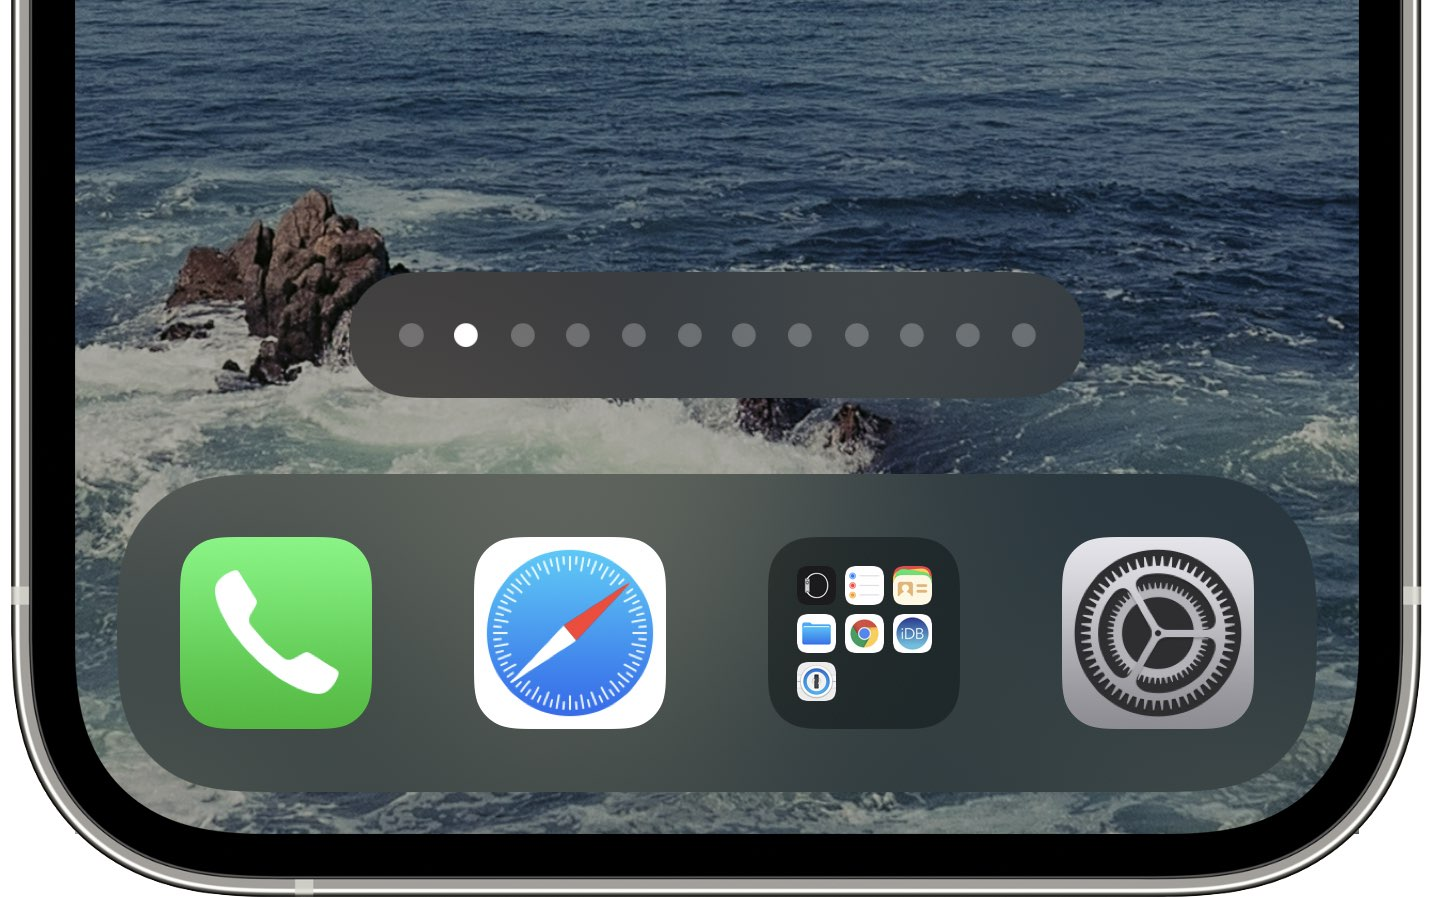 An iPhone screenshot showing the Home Screen with the dots at the bottom